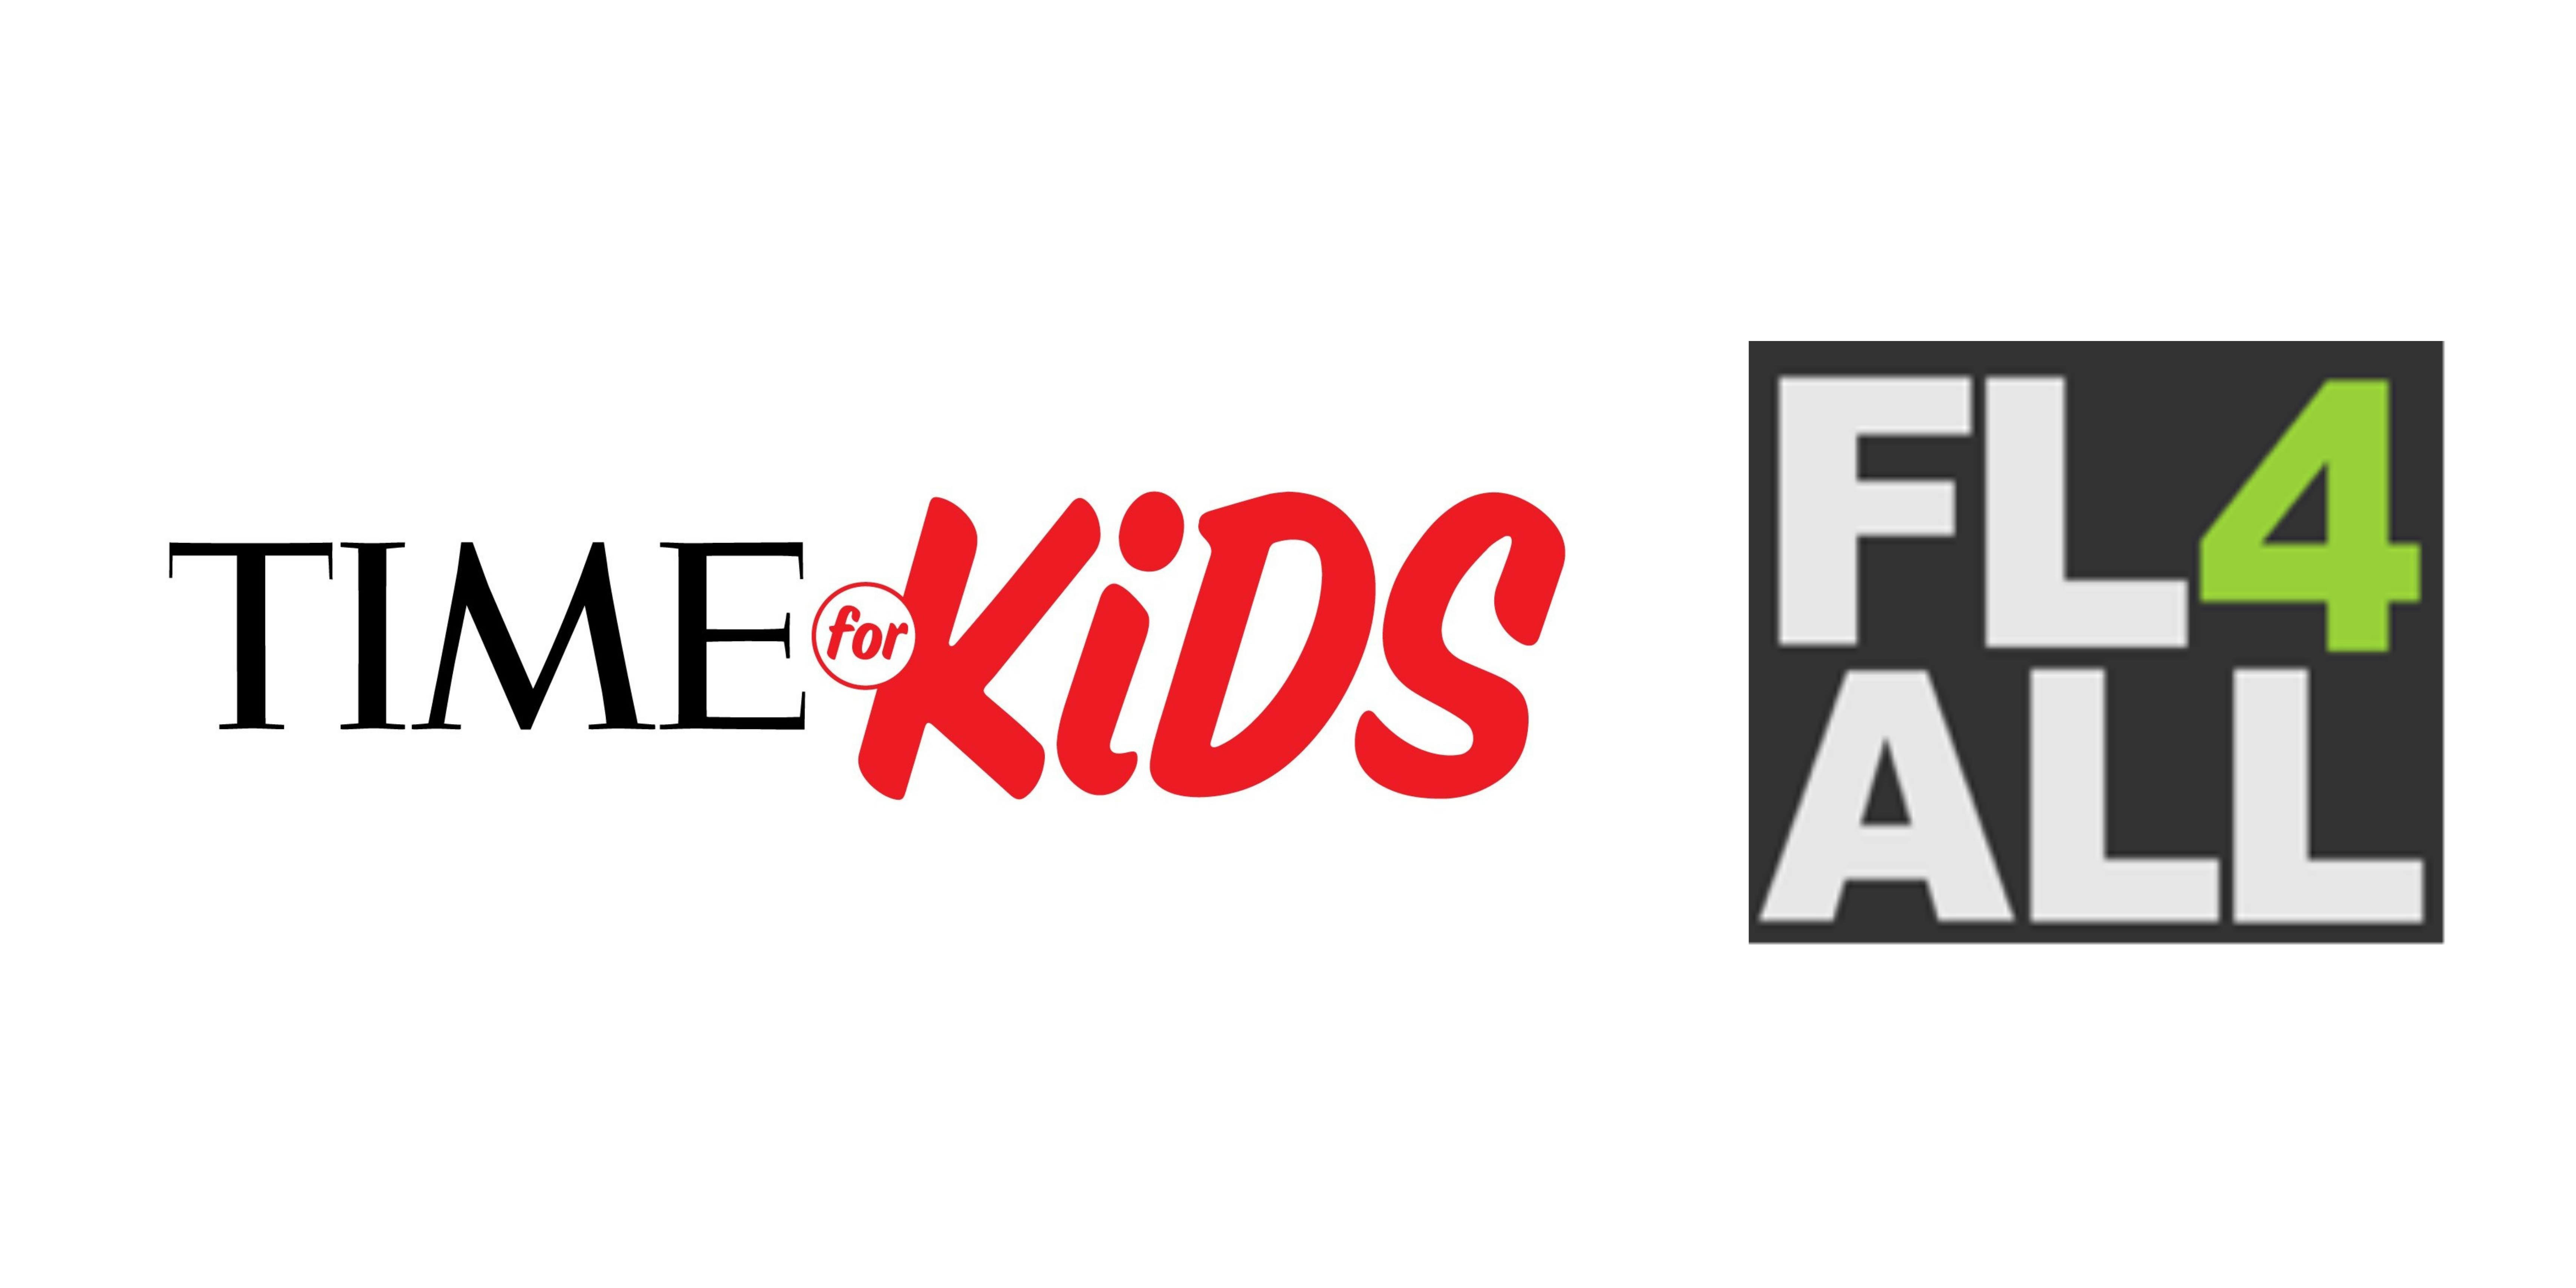 TIME for Kids Joins Operation HOPE's Financial Literacy For All Movement